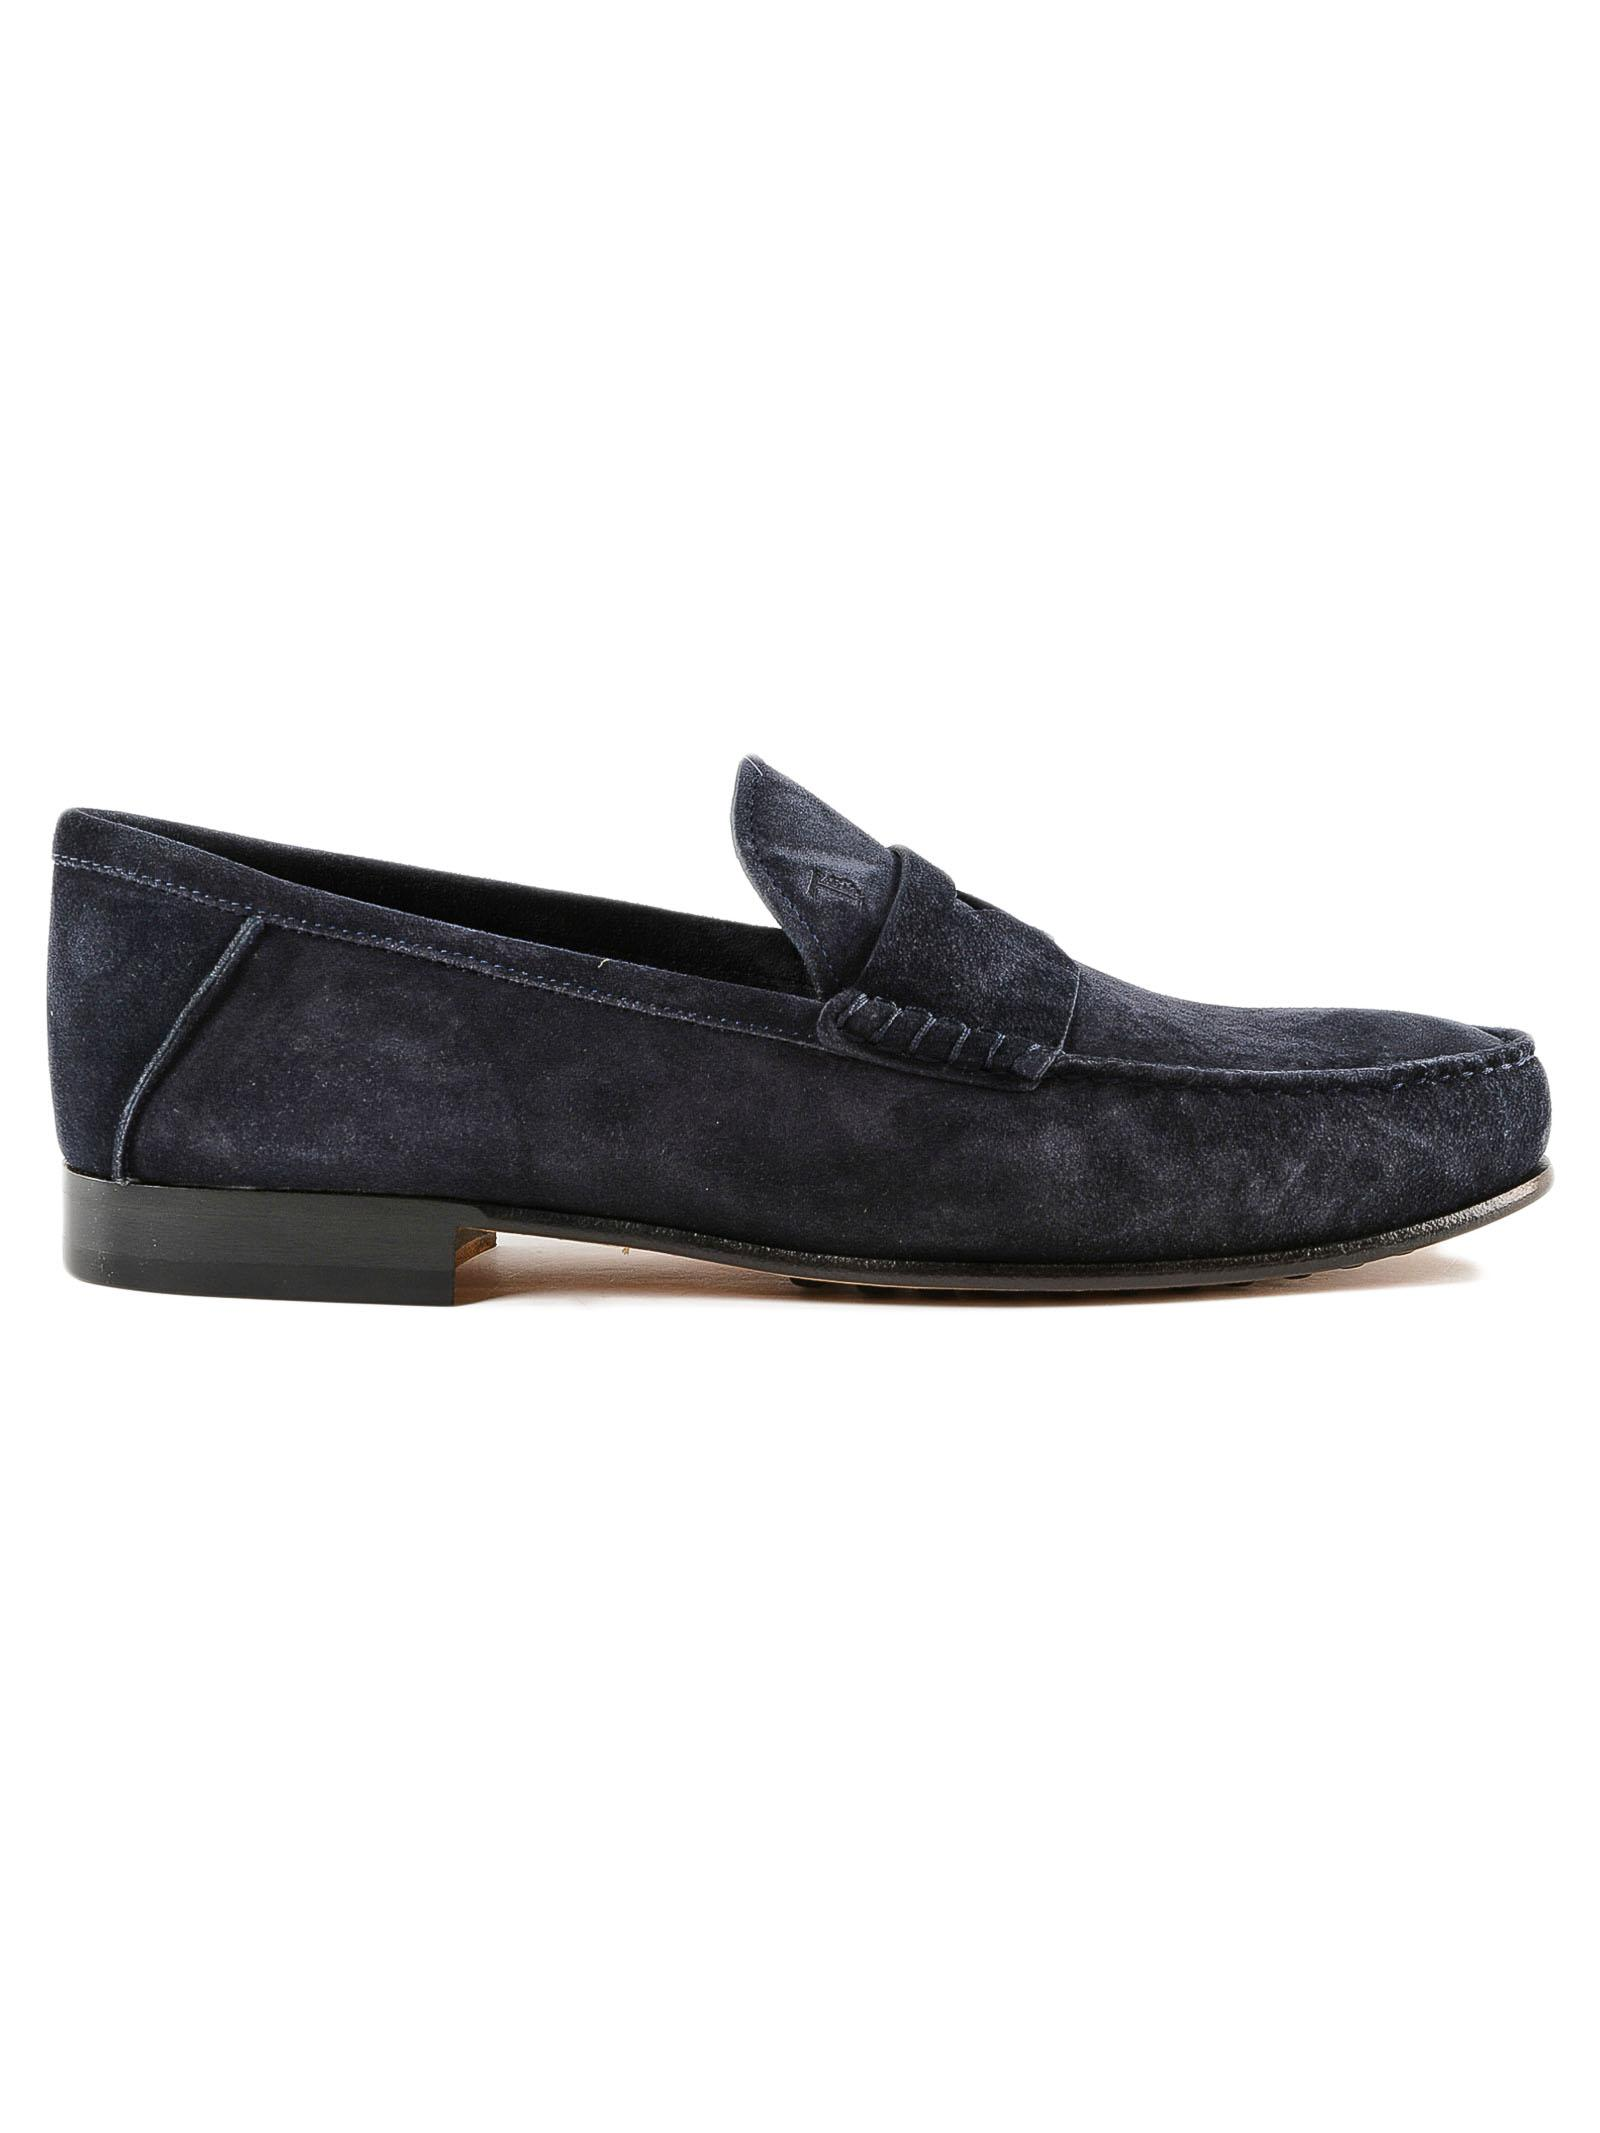 48be7b23ee618 Tod's Blue Suede Loafers Inject.sole for men. View fullscreen